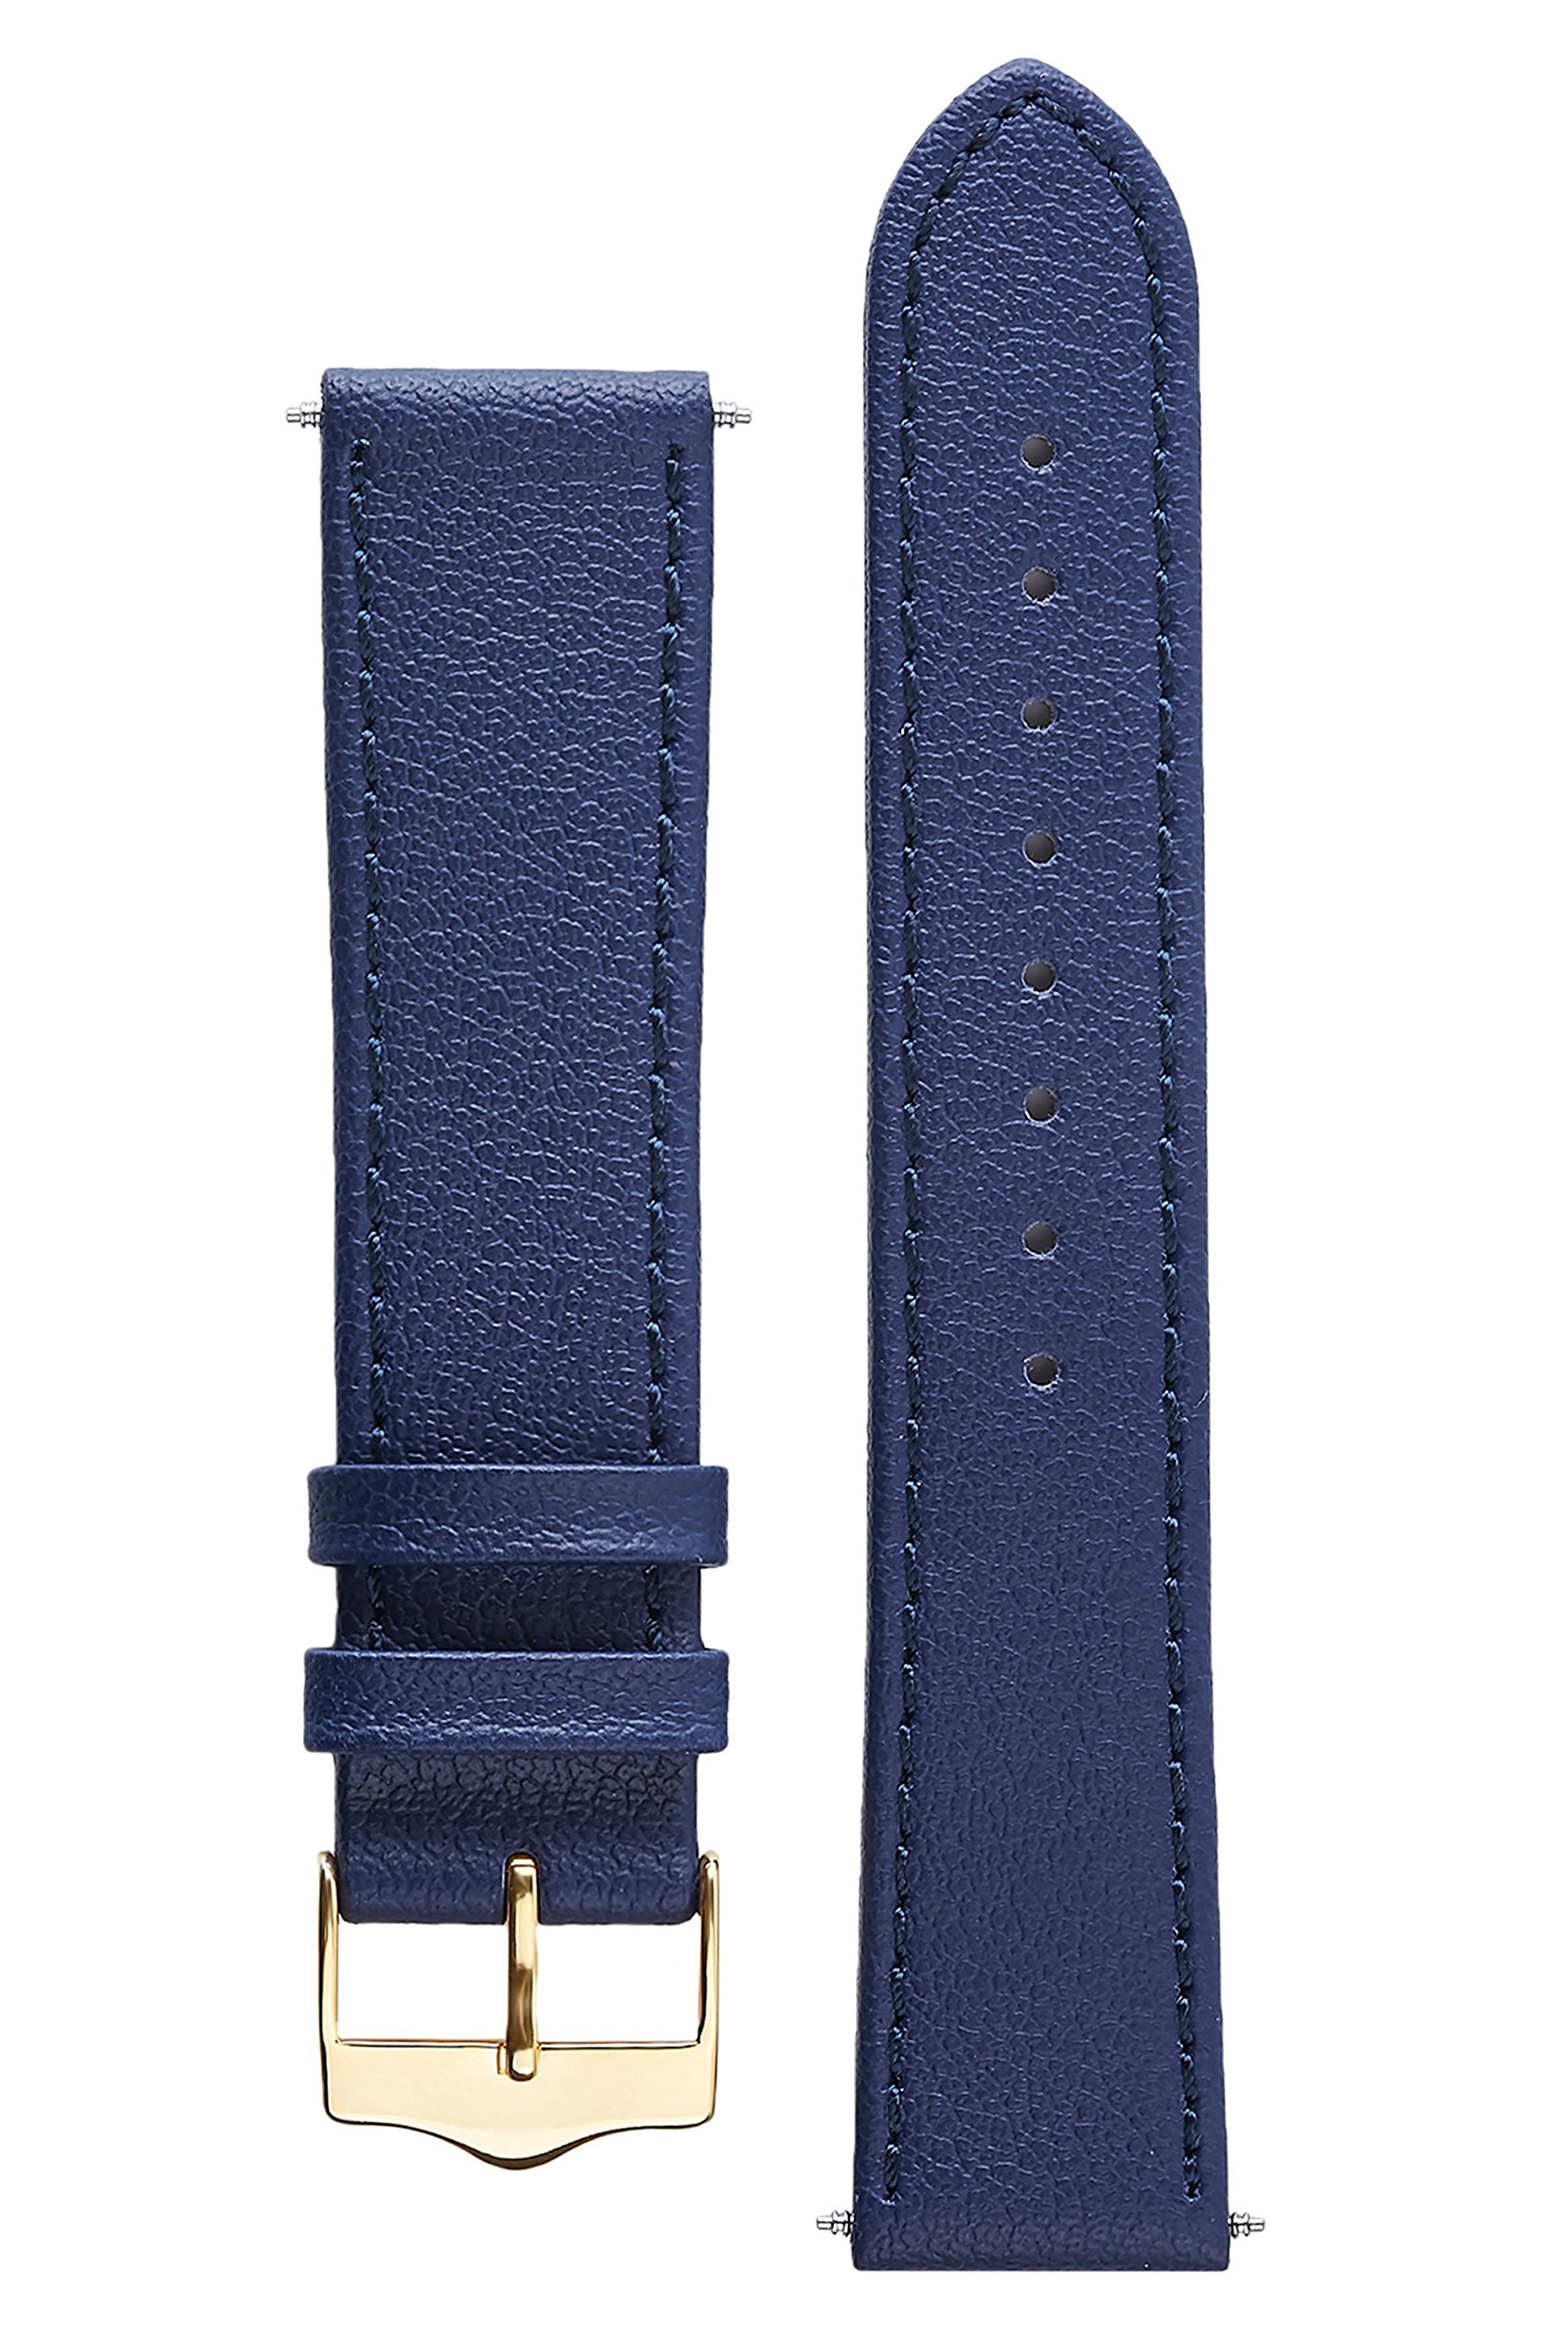 Signature Seasons in Blue 16 mm watch band. Replacement watch strap. Genuine leather. Gold Buckle